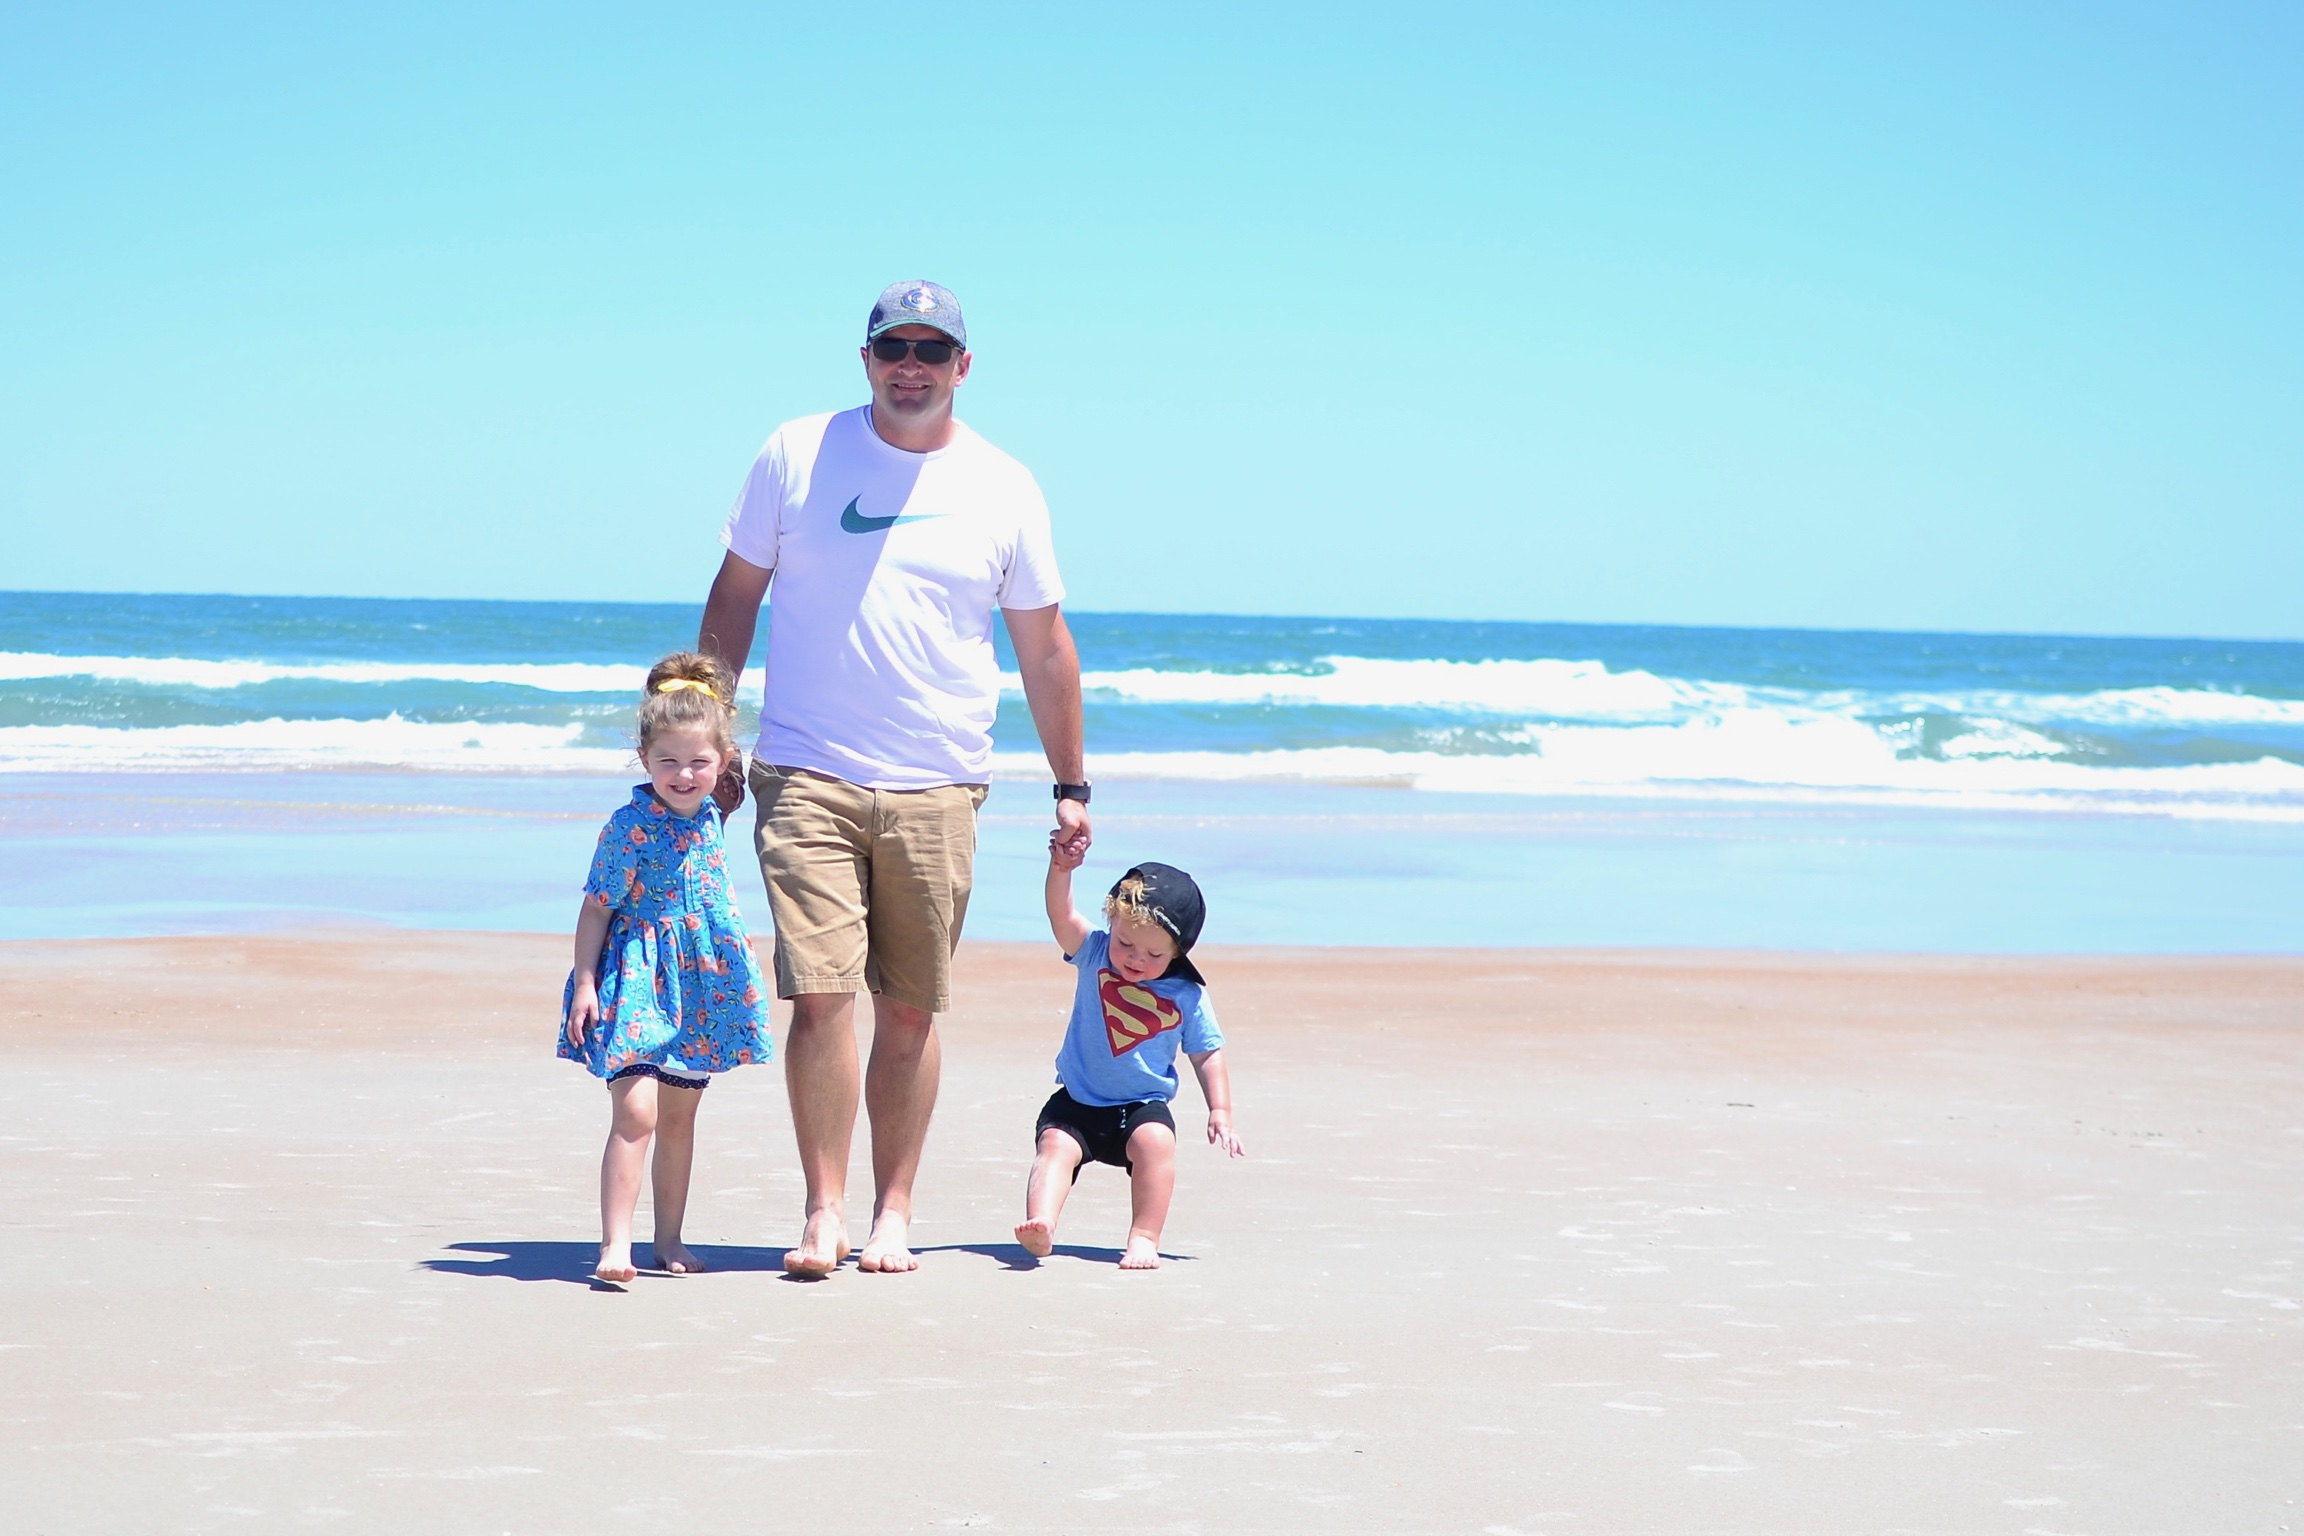 Thinking of taking a family spring break in Florida in 2019? This article will share the best spring break beaches for families, and some safe spring break destinations for families to avoid the crowds of college kids.There are also a few toddler friendly spring break Florida ideas to help you figure out where to go with little kids for a relaxing Florida vacation.